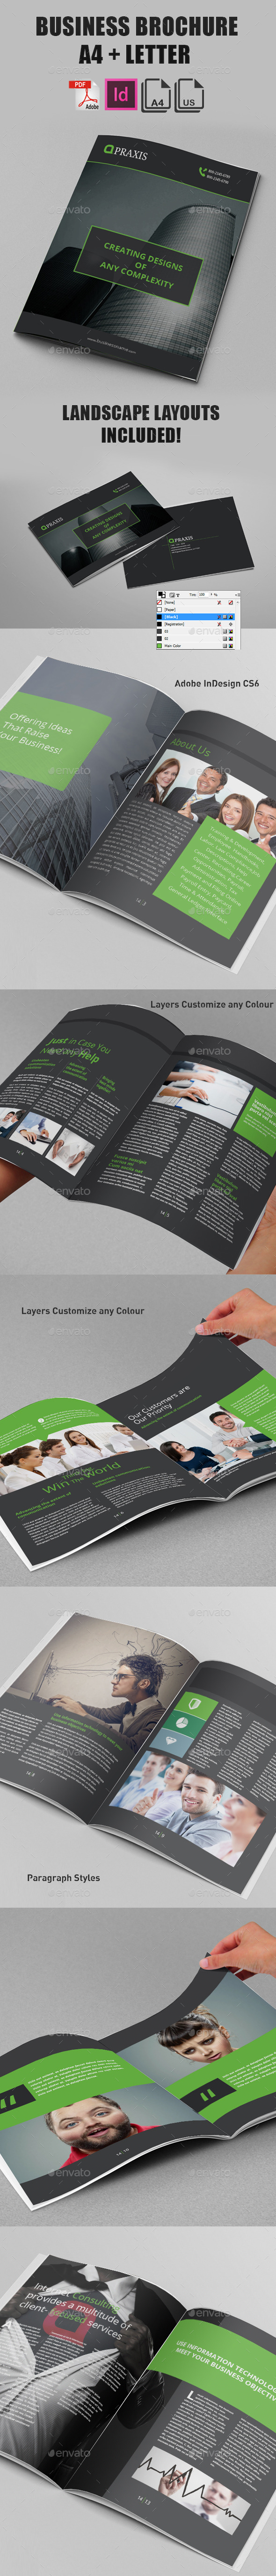 Corporate Business Brochure 14 pages - Corporate Brochures